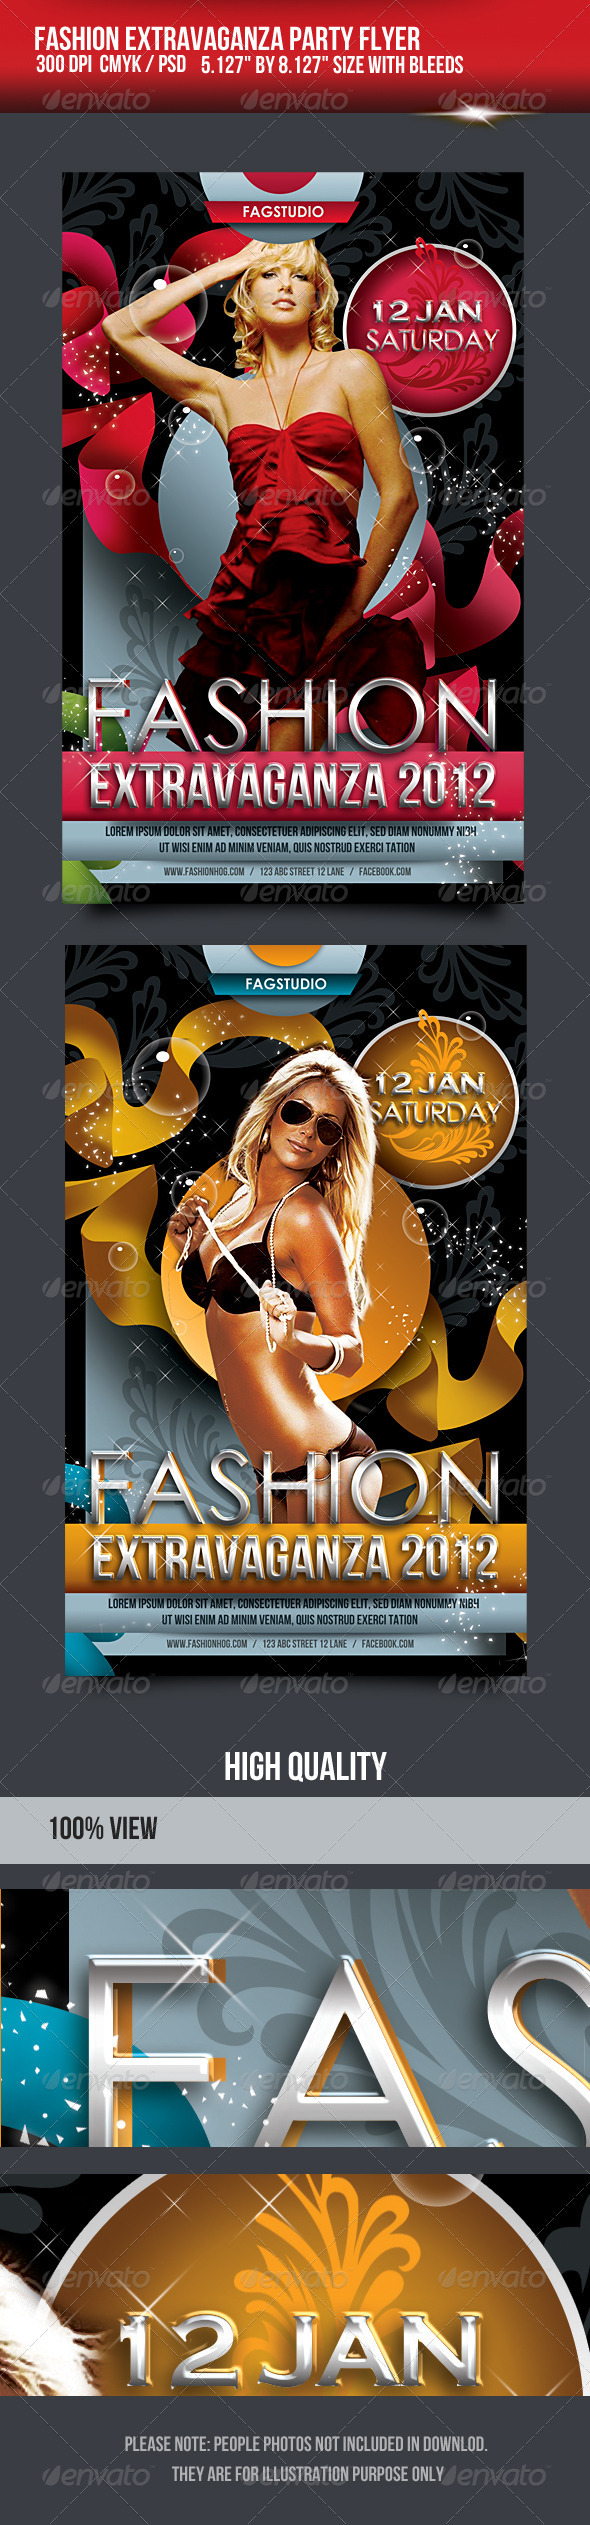 Fashion Extravaganza Party Flyer - Miscellaneous Events